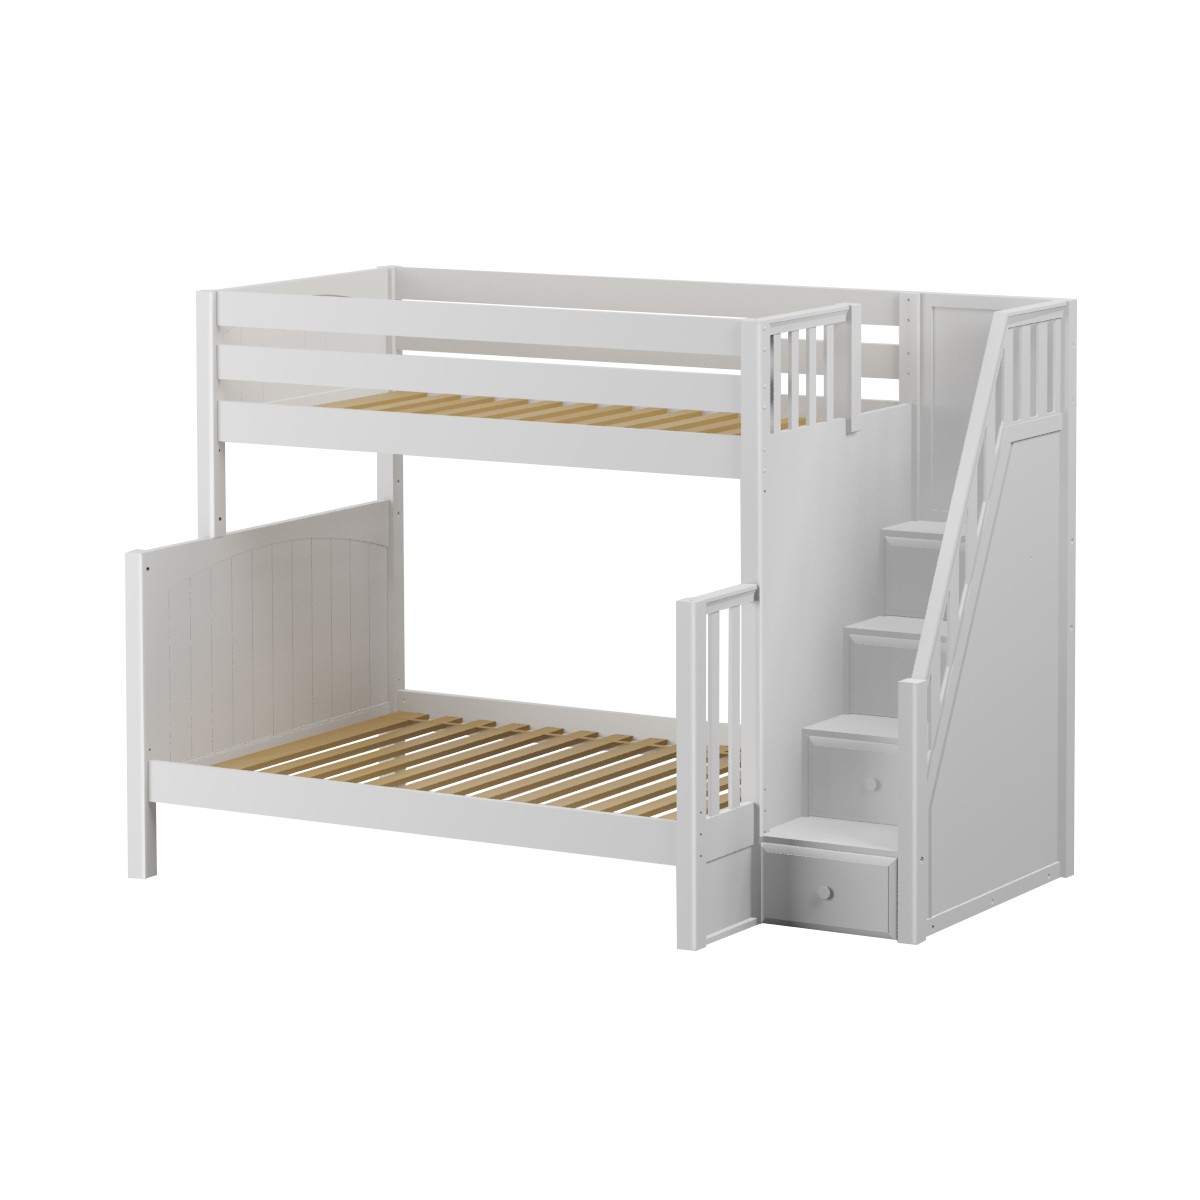 Picture of: Totem High Tof Bunk Bed By Maxtrix Kids White Panel Stairs